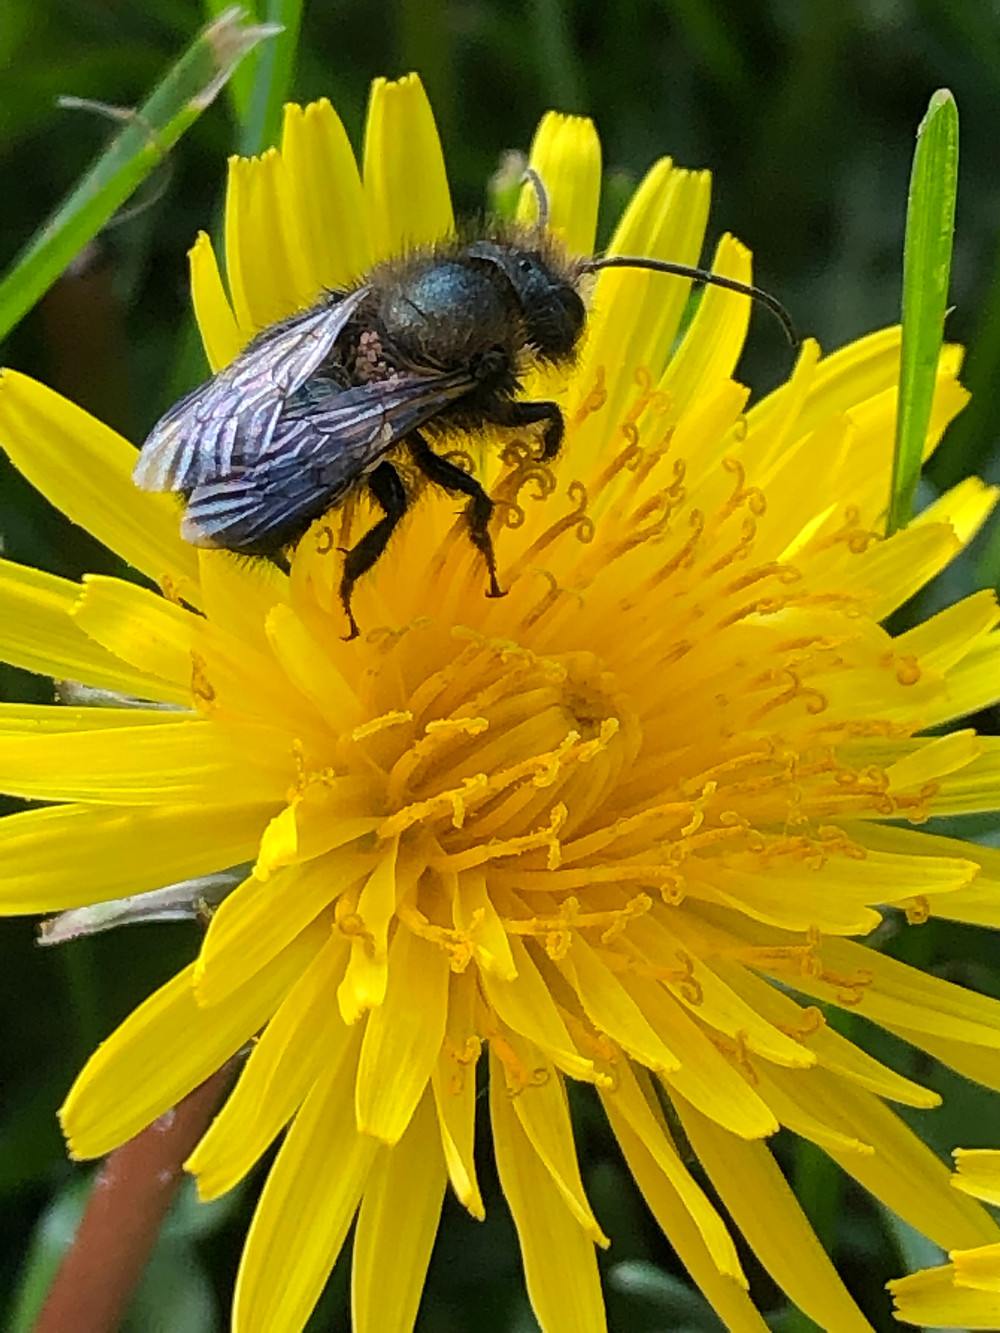 Mason bee harvesting pollen from a dandelion. Detail of wings and structure of bee and plant. Heavy with pollen nectar for bees.